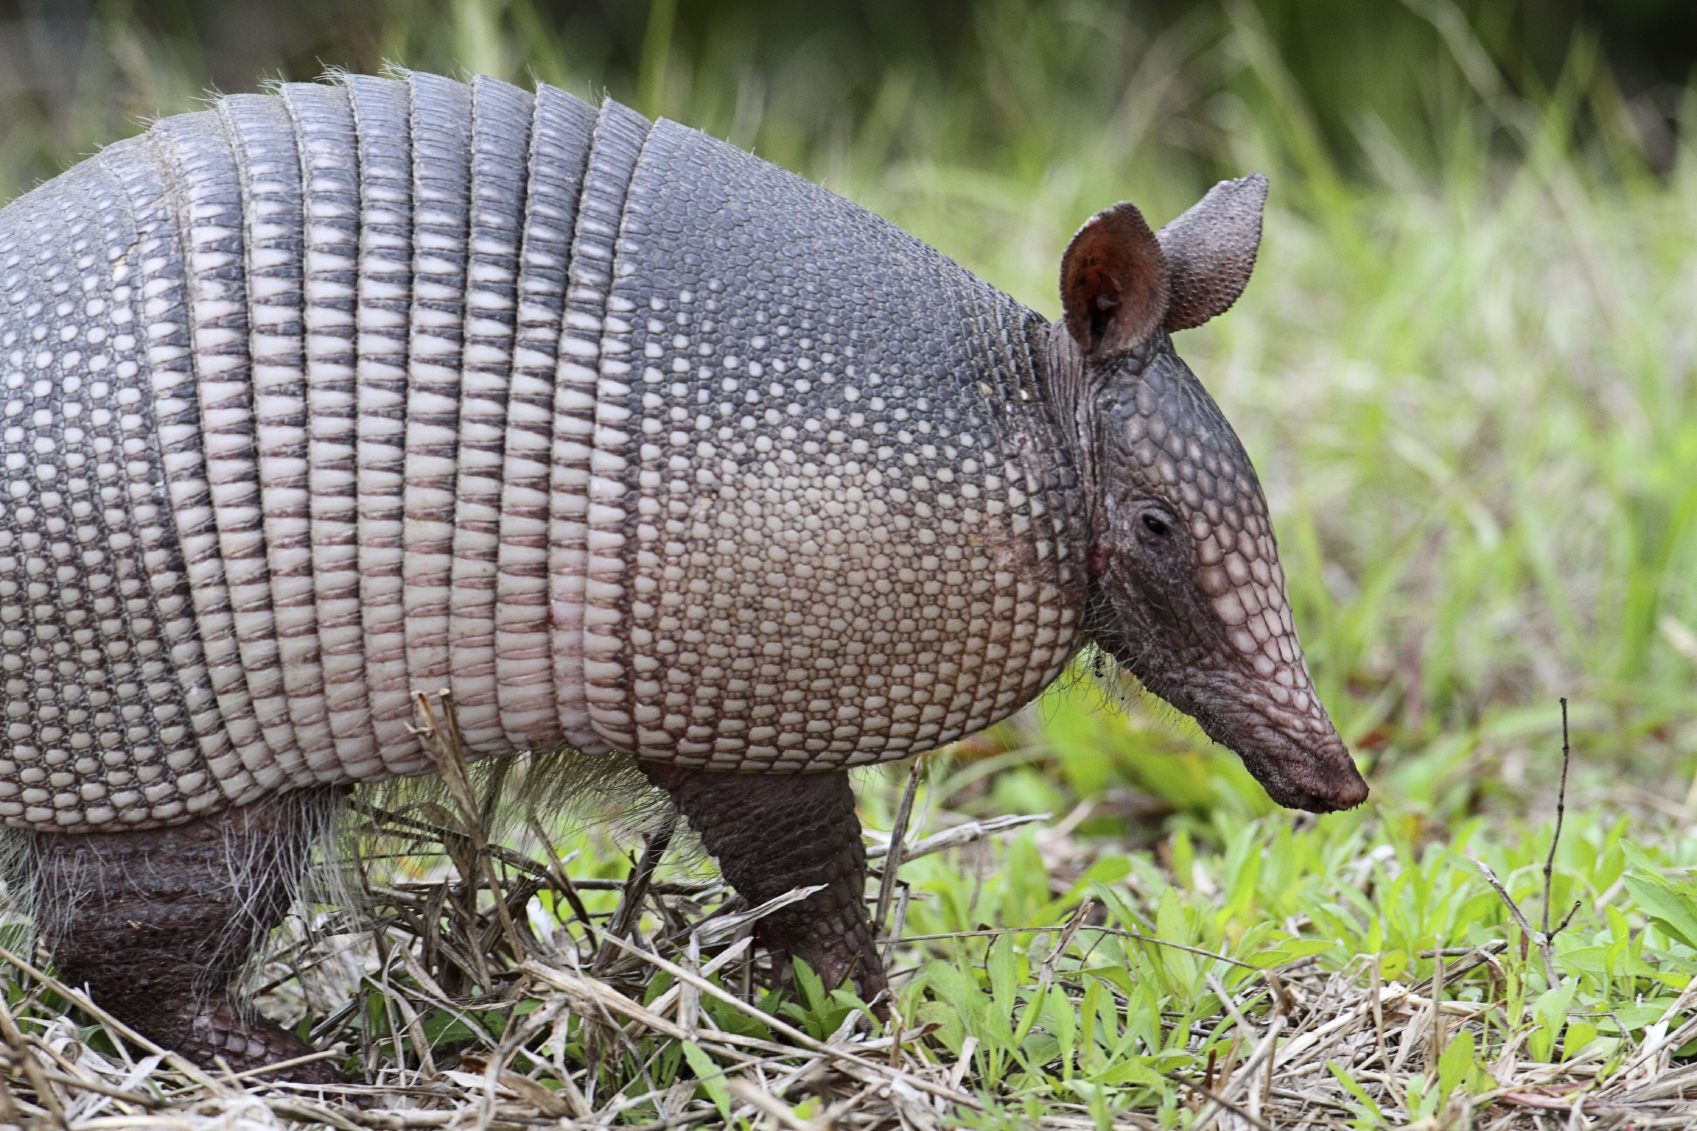 an in depth look at the latin america armadillo species With contributions an in depth look at the latin america armadillo species from dawkins' research assistant yan wong 10-9-2017 as hurricane irma rakes the west coast of florida between march and august all eyes are on the cities and human lives in the storms path but irma is also hammering the florida.